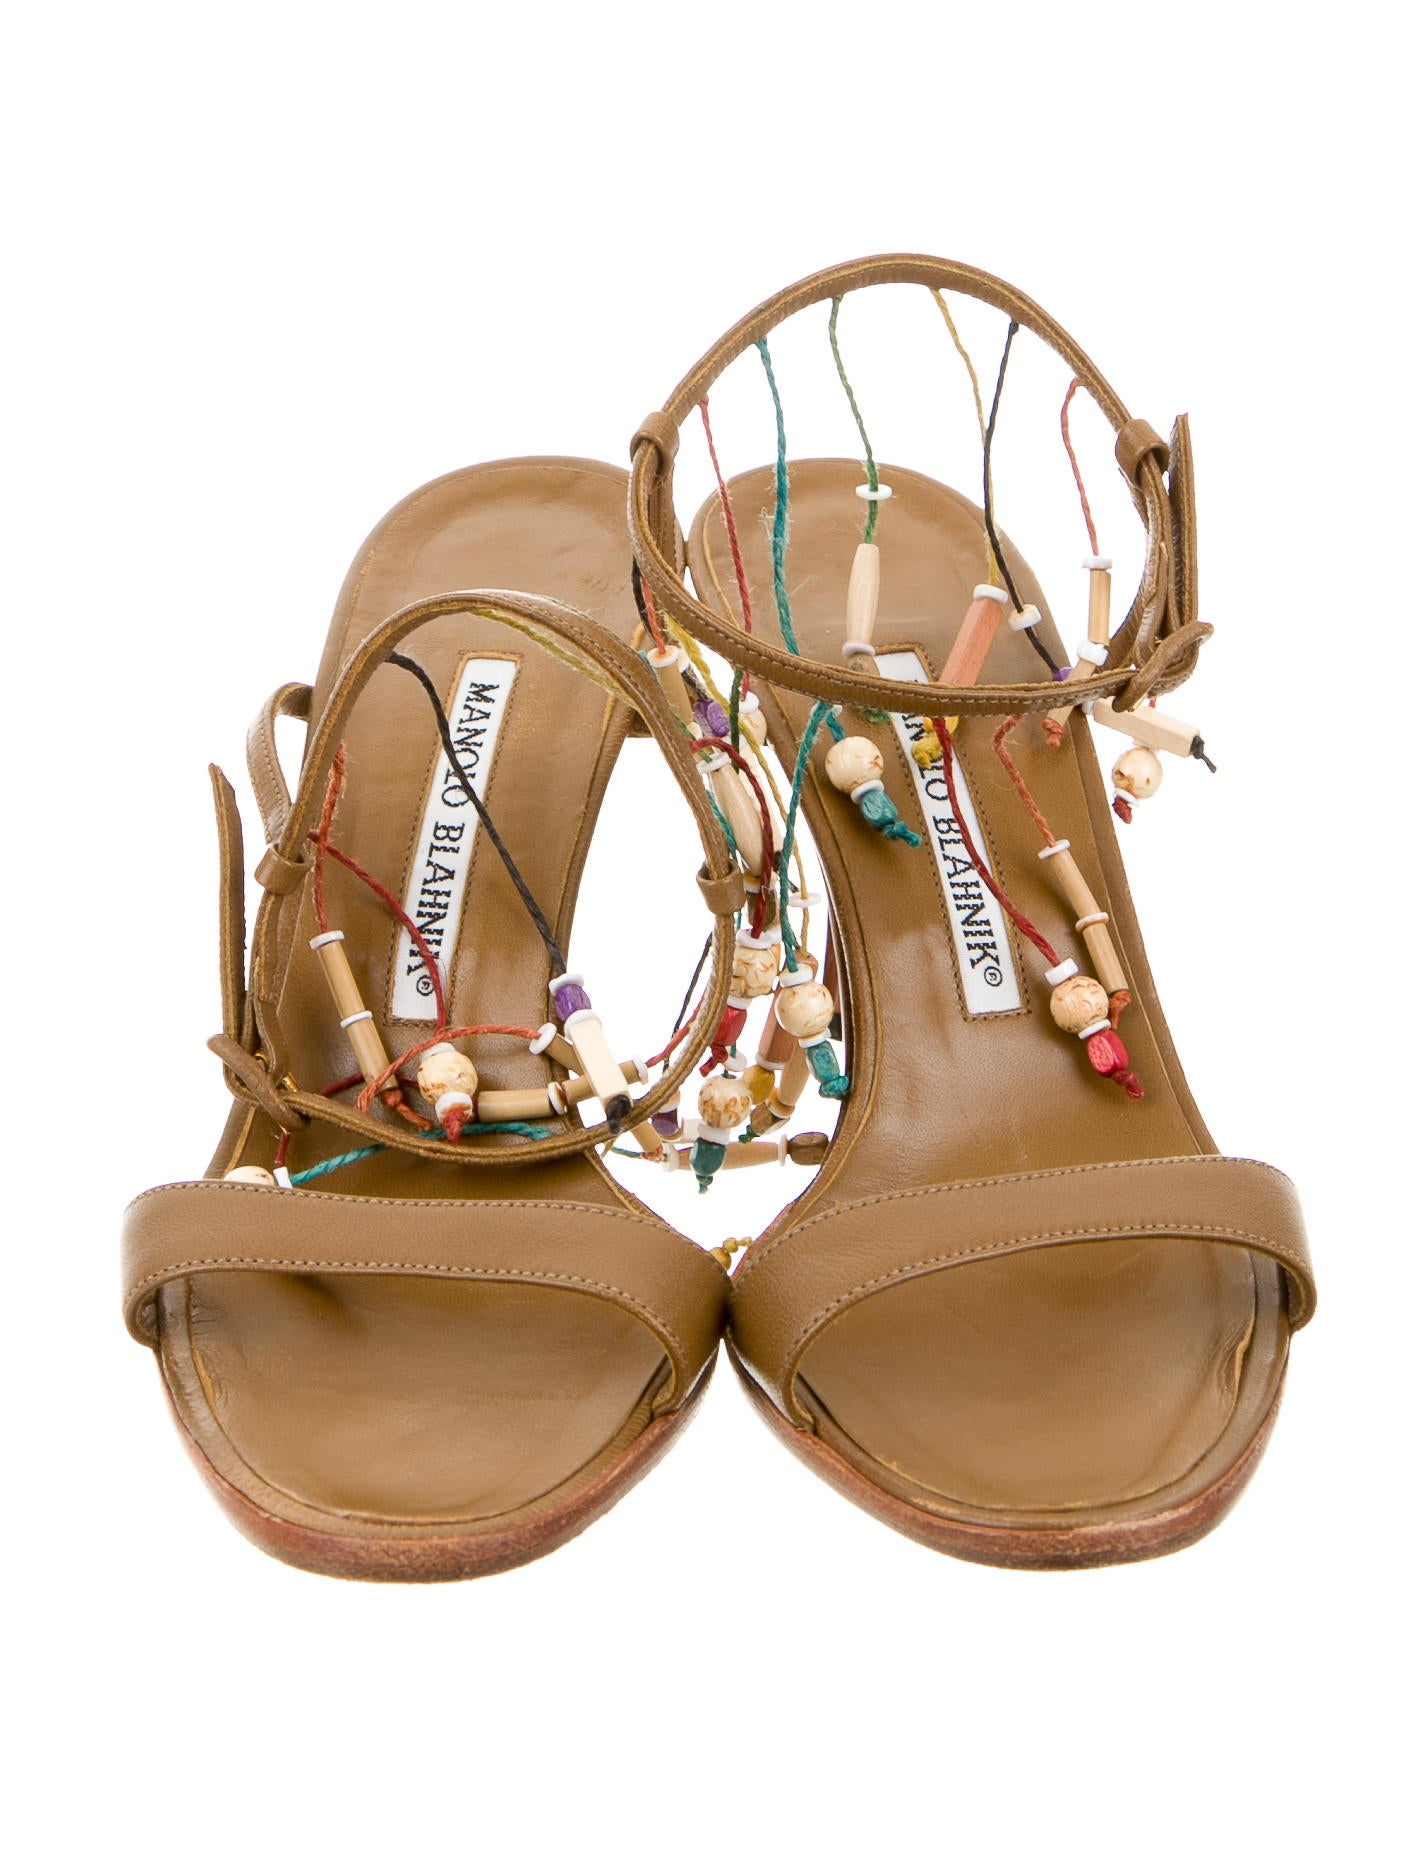 manolo blahnik beaded leather sandals shoes moo50322